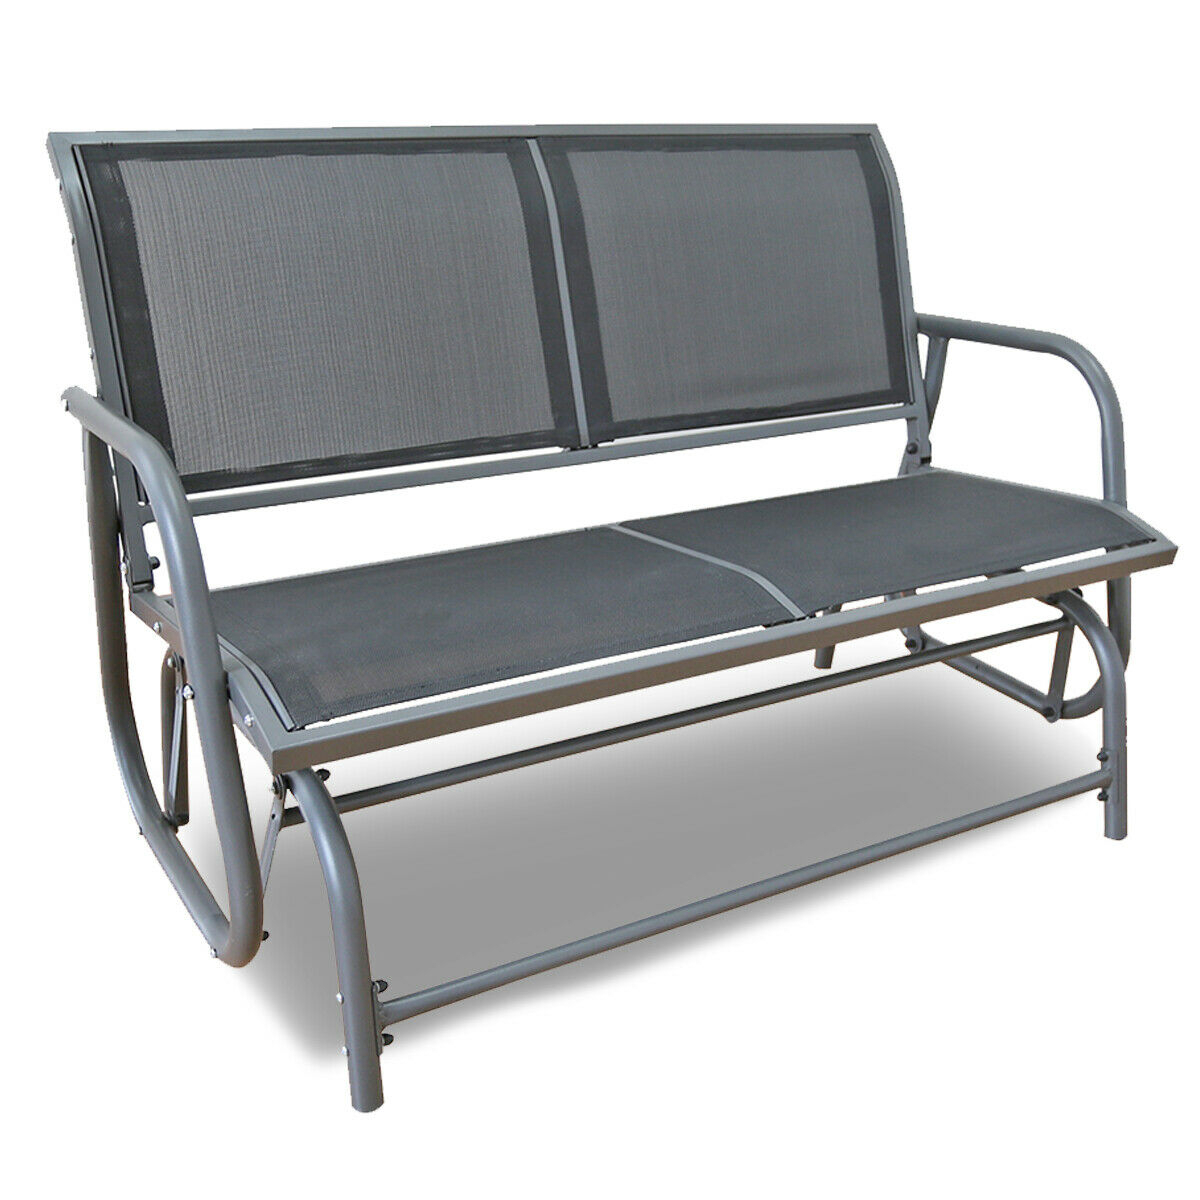 Outdoor Swing Glider 2 Person Patio Rocking Chair Loveseat Bench Furniture  Yard Regarding 2 Person Antique Black Iron Outdoor Gliders (Image 21 of 25)